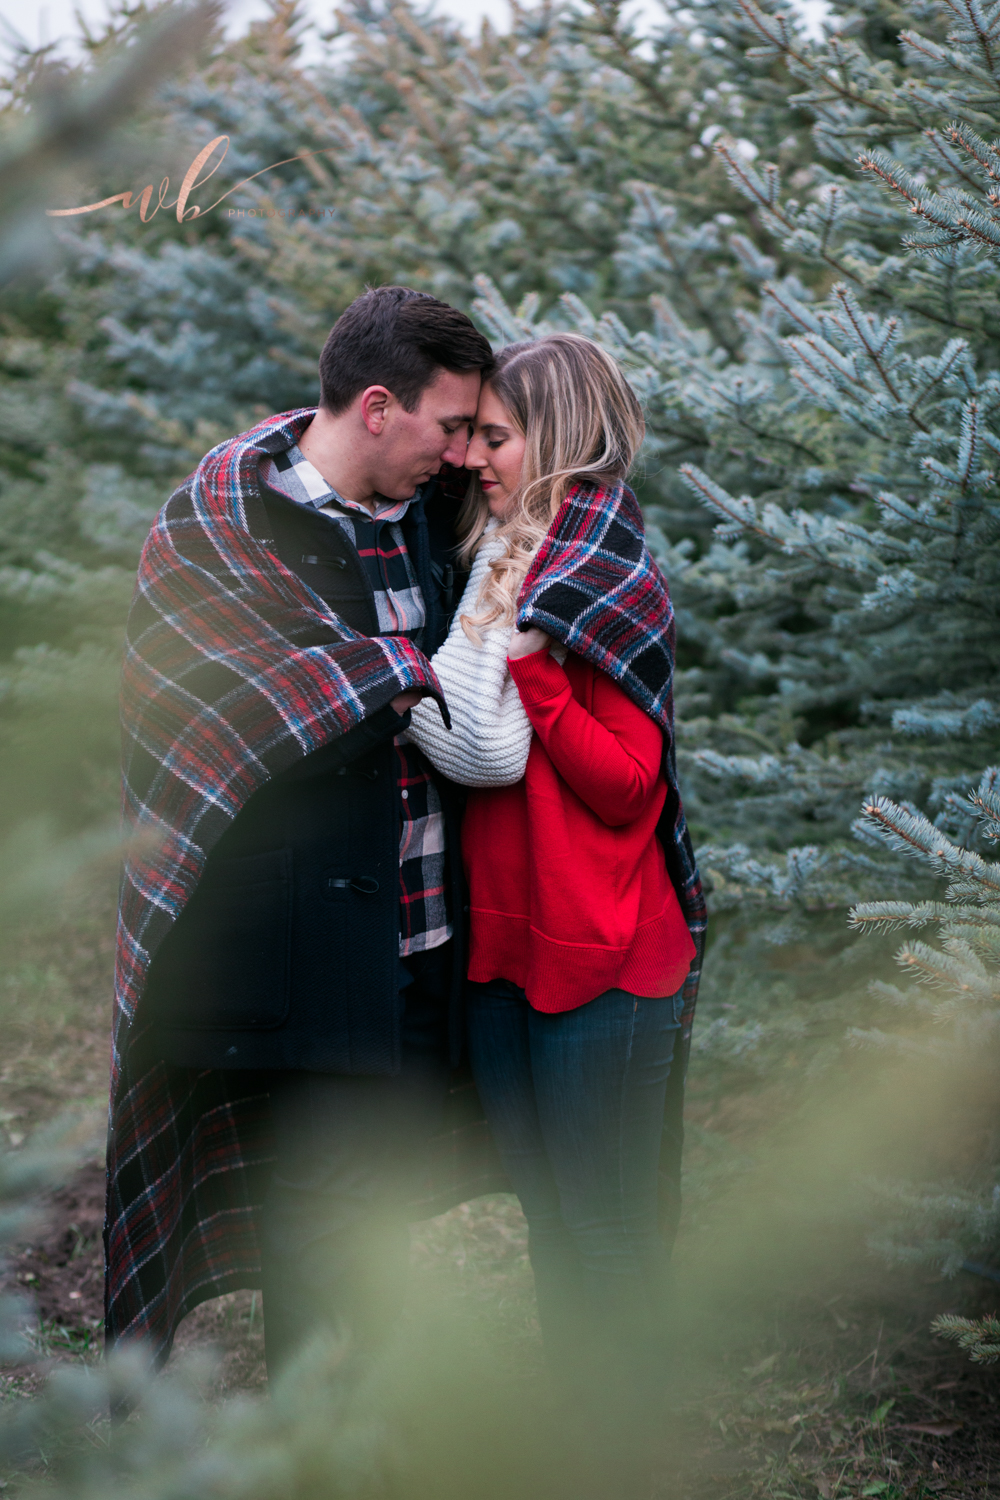 couples winter photo shoot in utah